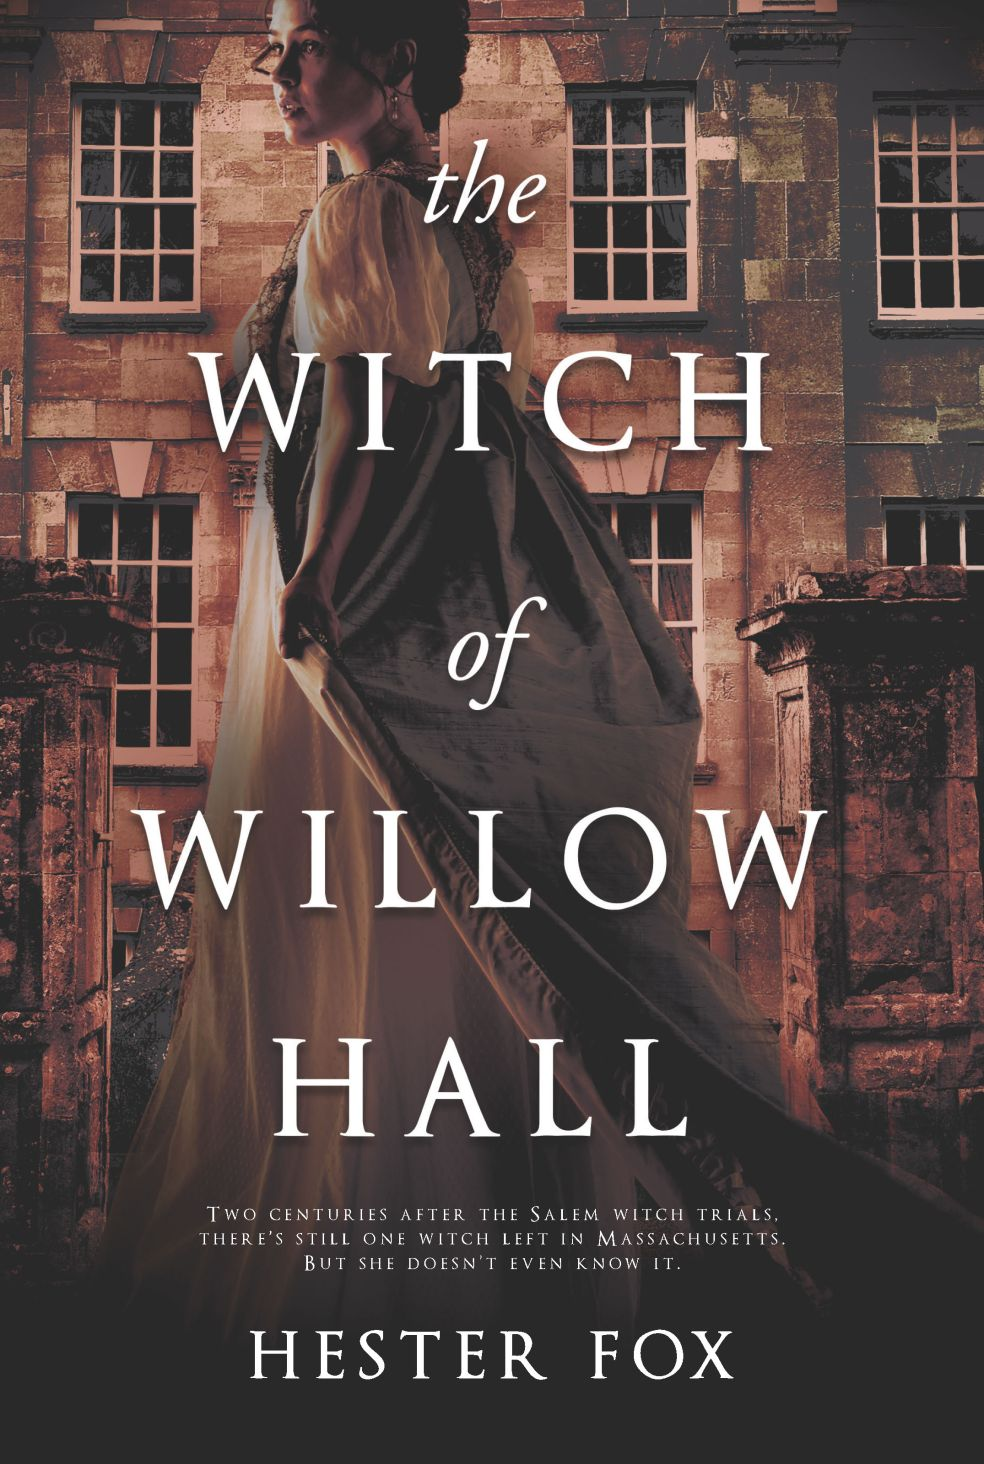 cover_The Witch of Willow Hall_Hester Fox_Graydon House Books_Oct 2 2018(1)